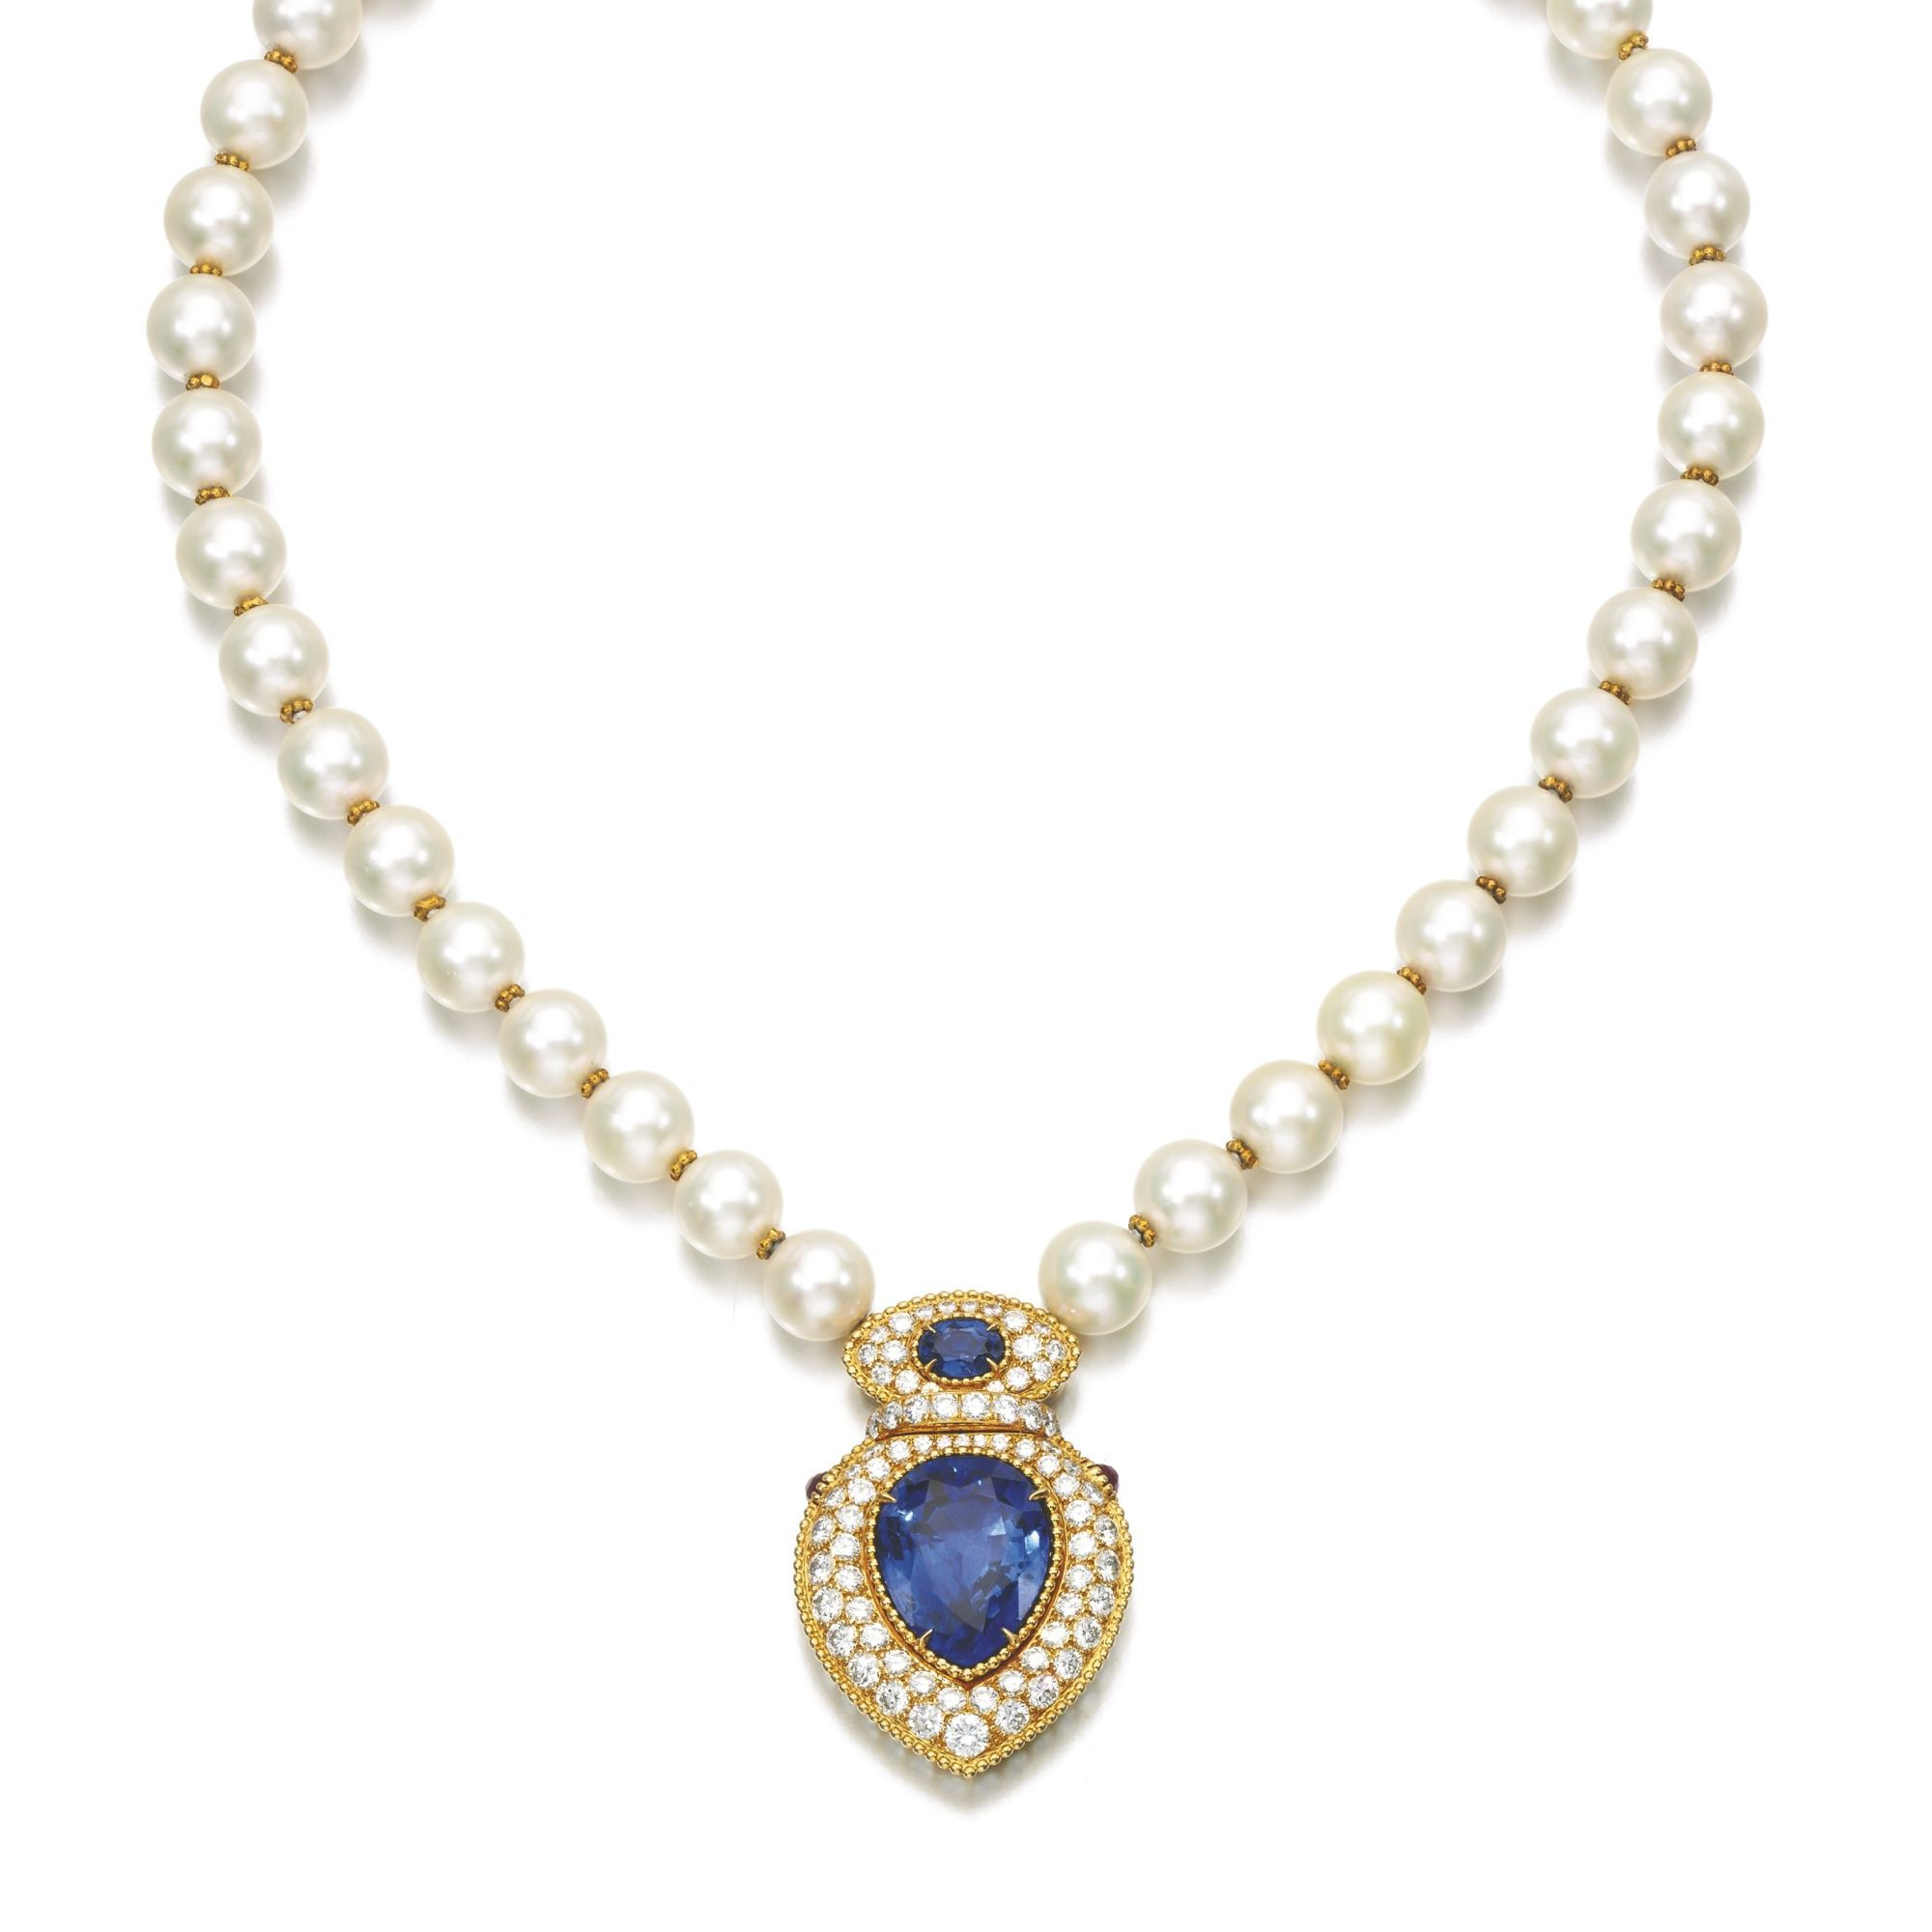 Cultured pearl sapphire ruby and diamond necklace designed as a